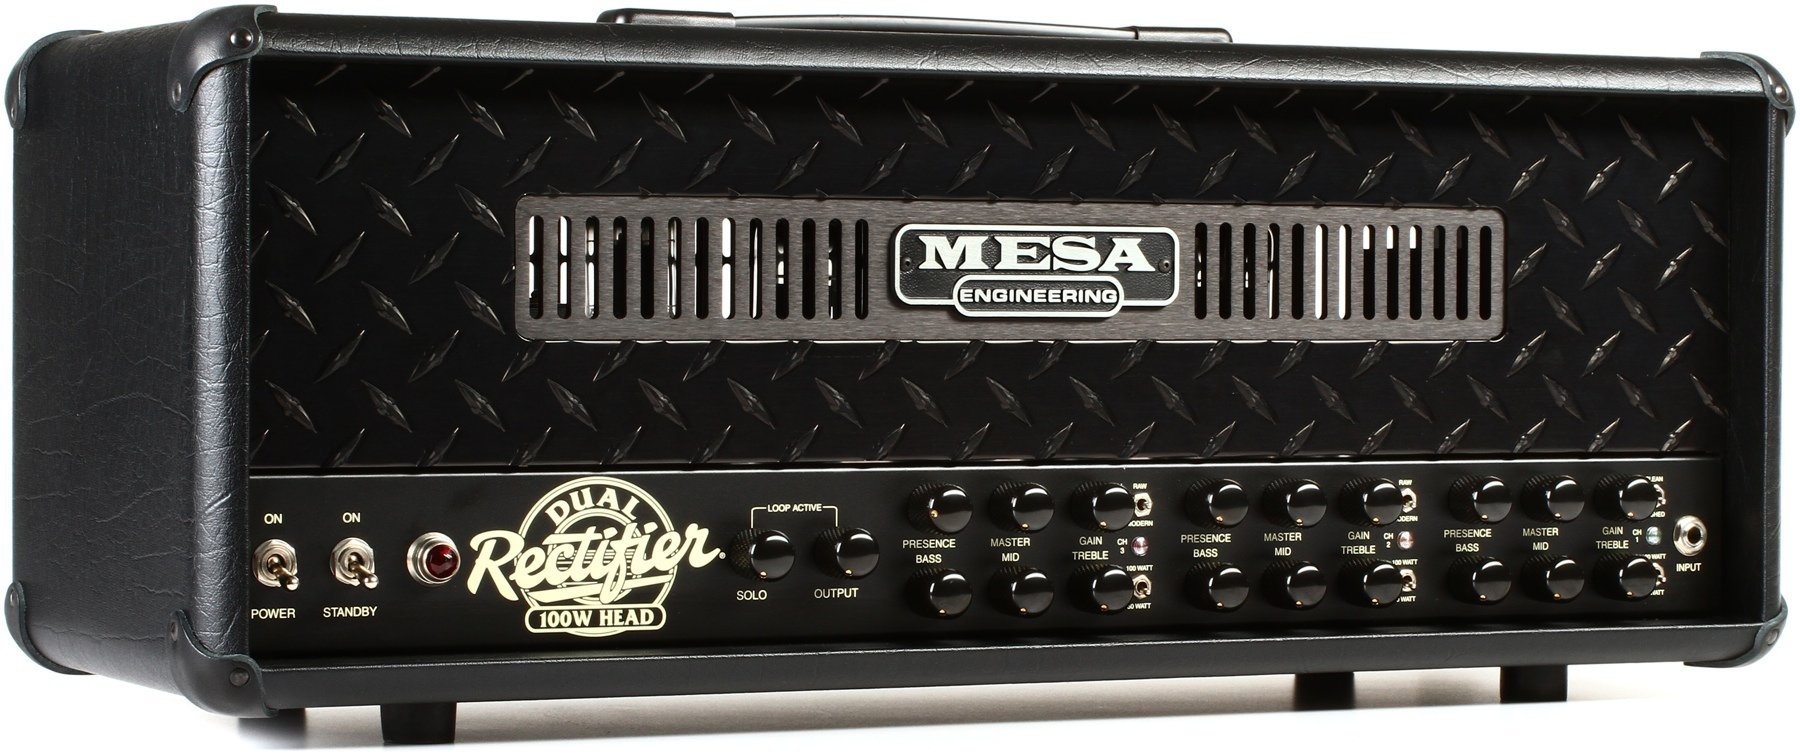 Mesa Boogie Dual Rectifier 100 Watt Tube Head Blacked Out Jack Plate With Switch For Use Cabinets And More Image